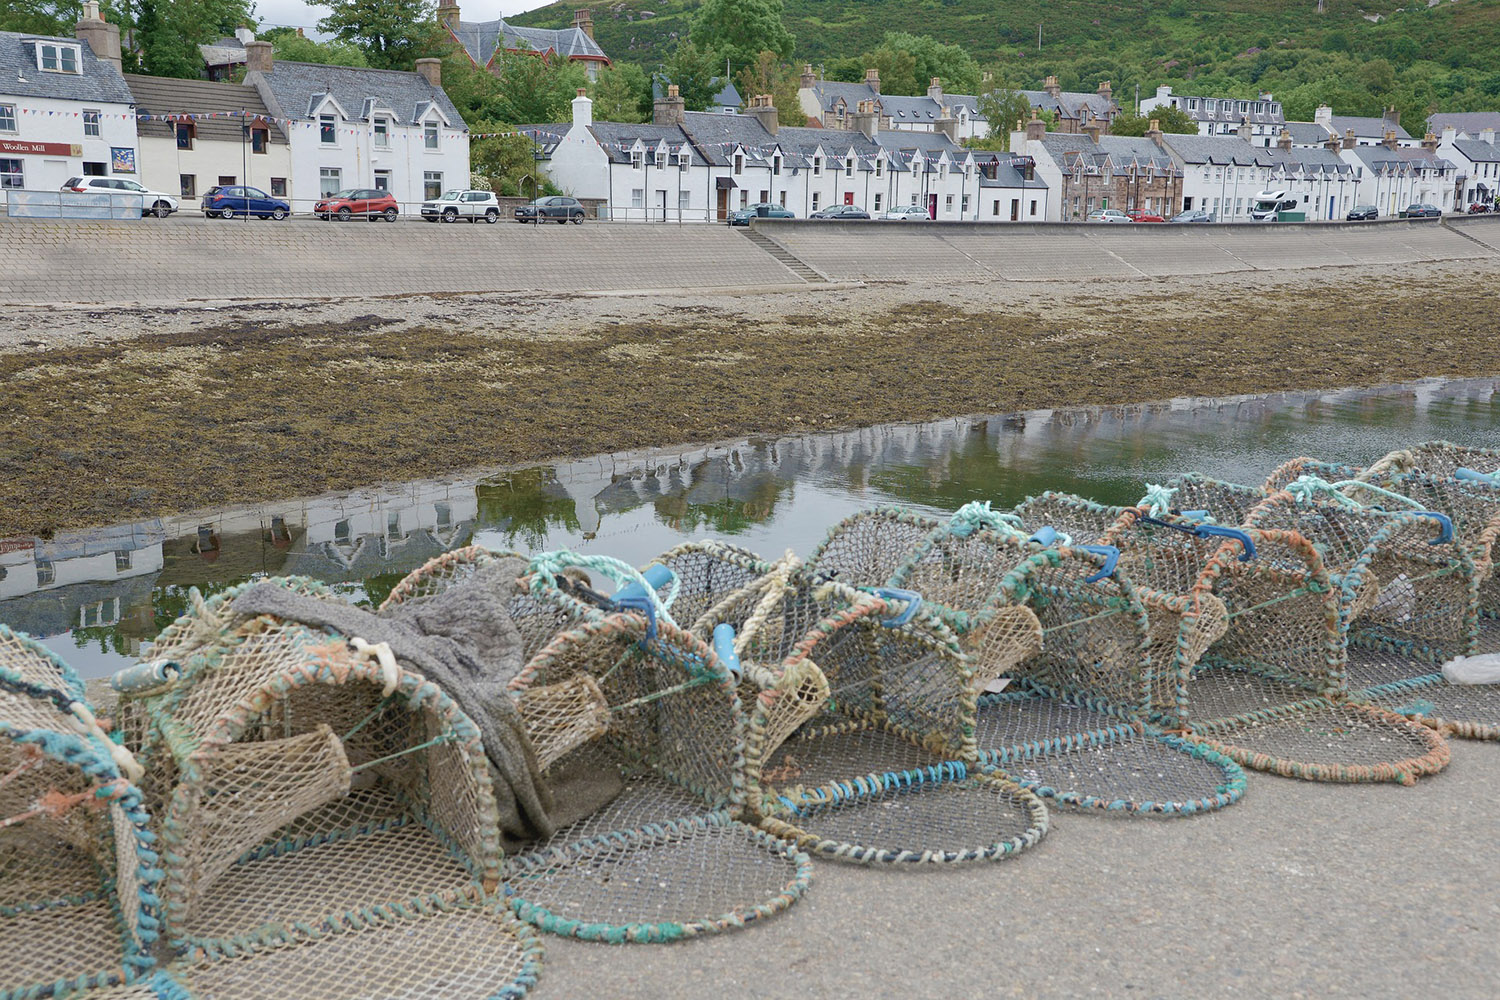 Ullapool is scenic village and is part of our prehistoric tour of Scotland